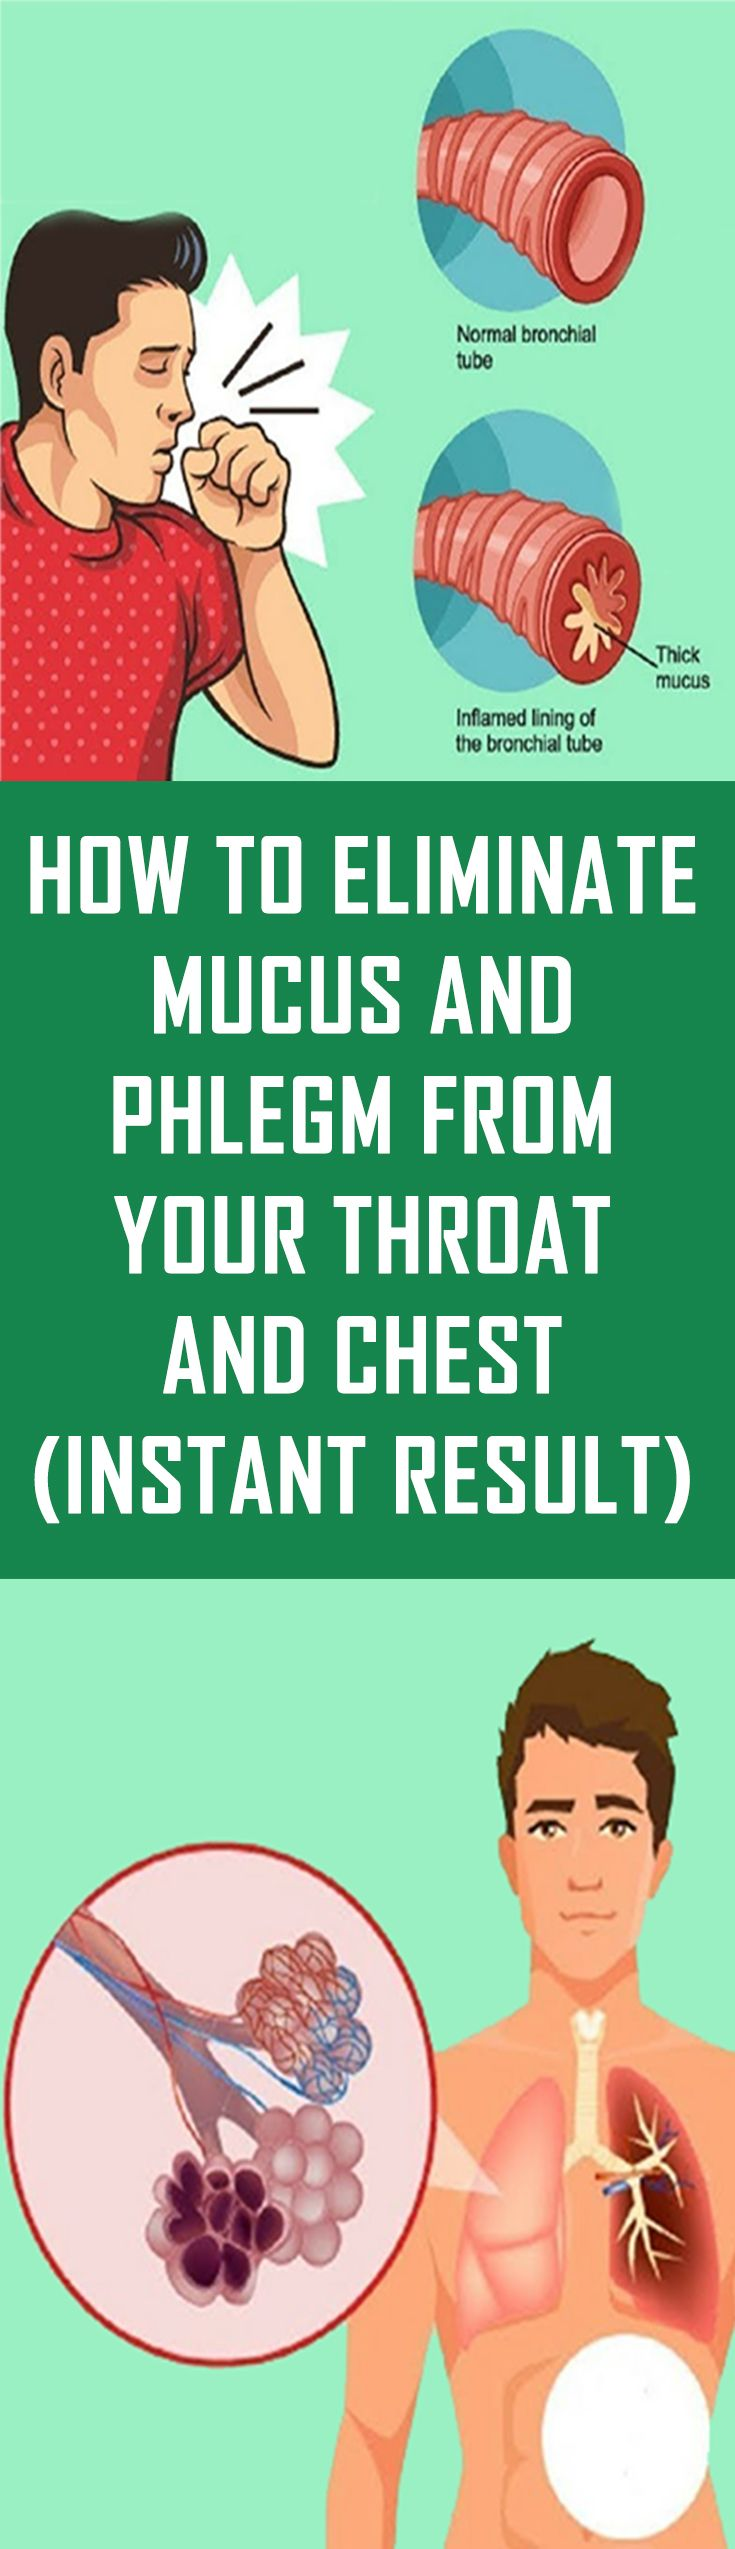 How to eliminate mucus and phlegm from your throat and